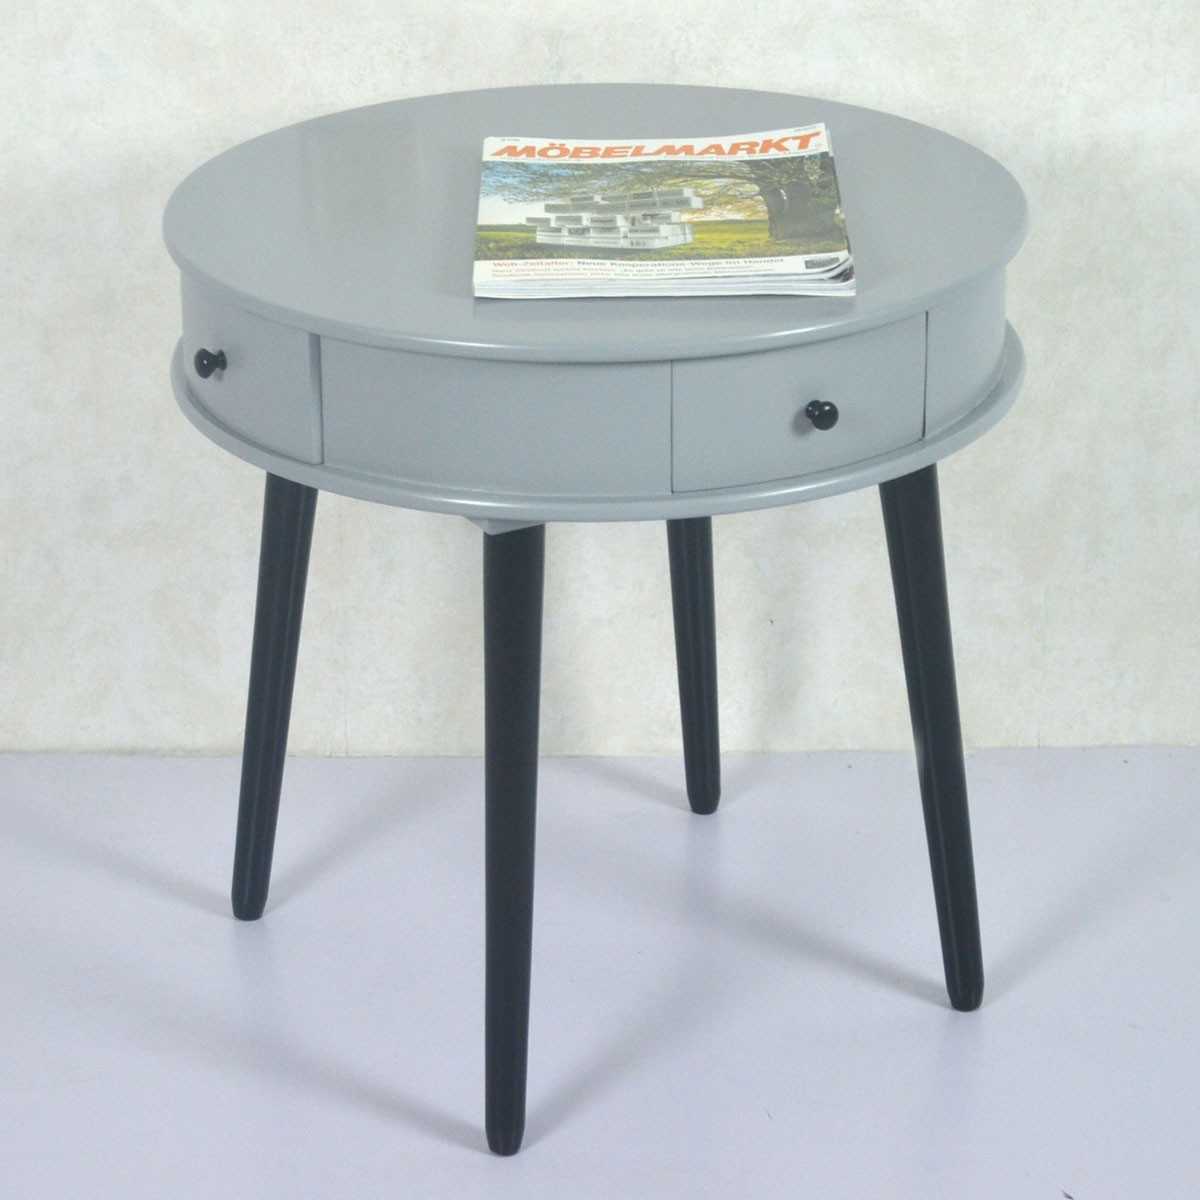 Round Coffee Table With Drawers 22 0d Round Wood Coffee Table With 4 Drawers Ji3293